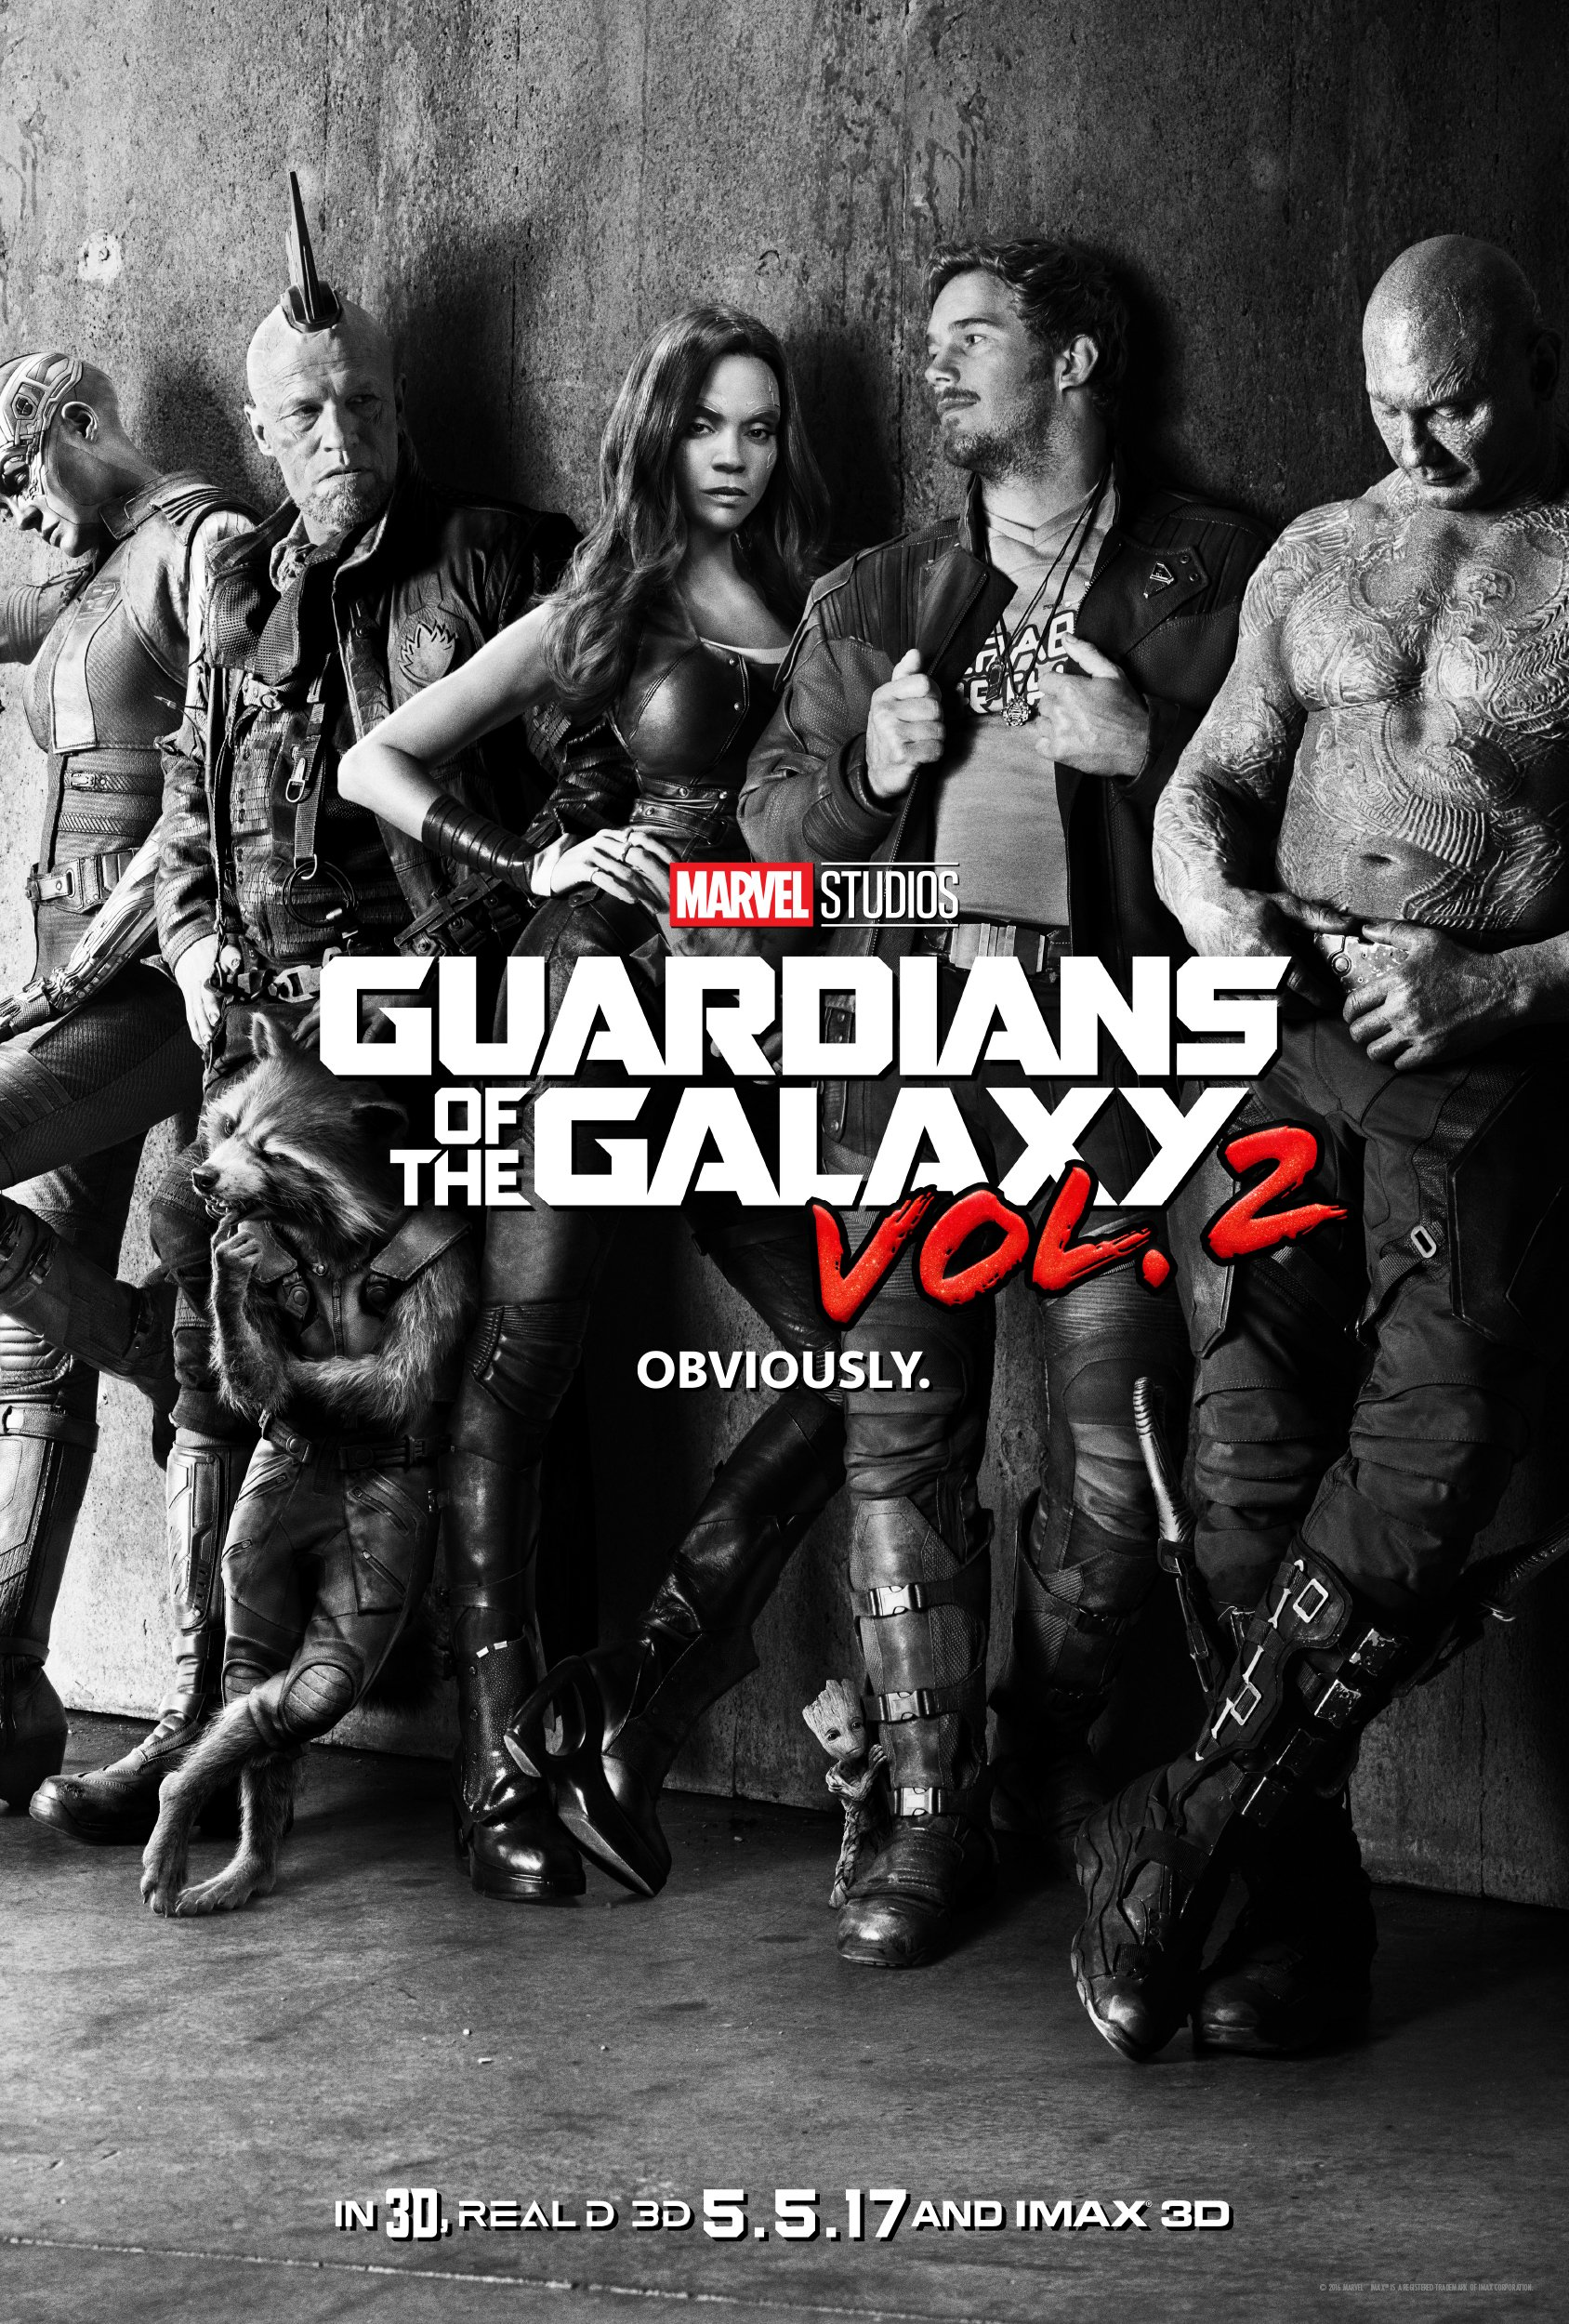 Marvel Studios' GUARDIANS OF THE GALAXY VOL. 2 New Trailer and Poster Now Available!